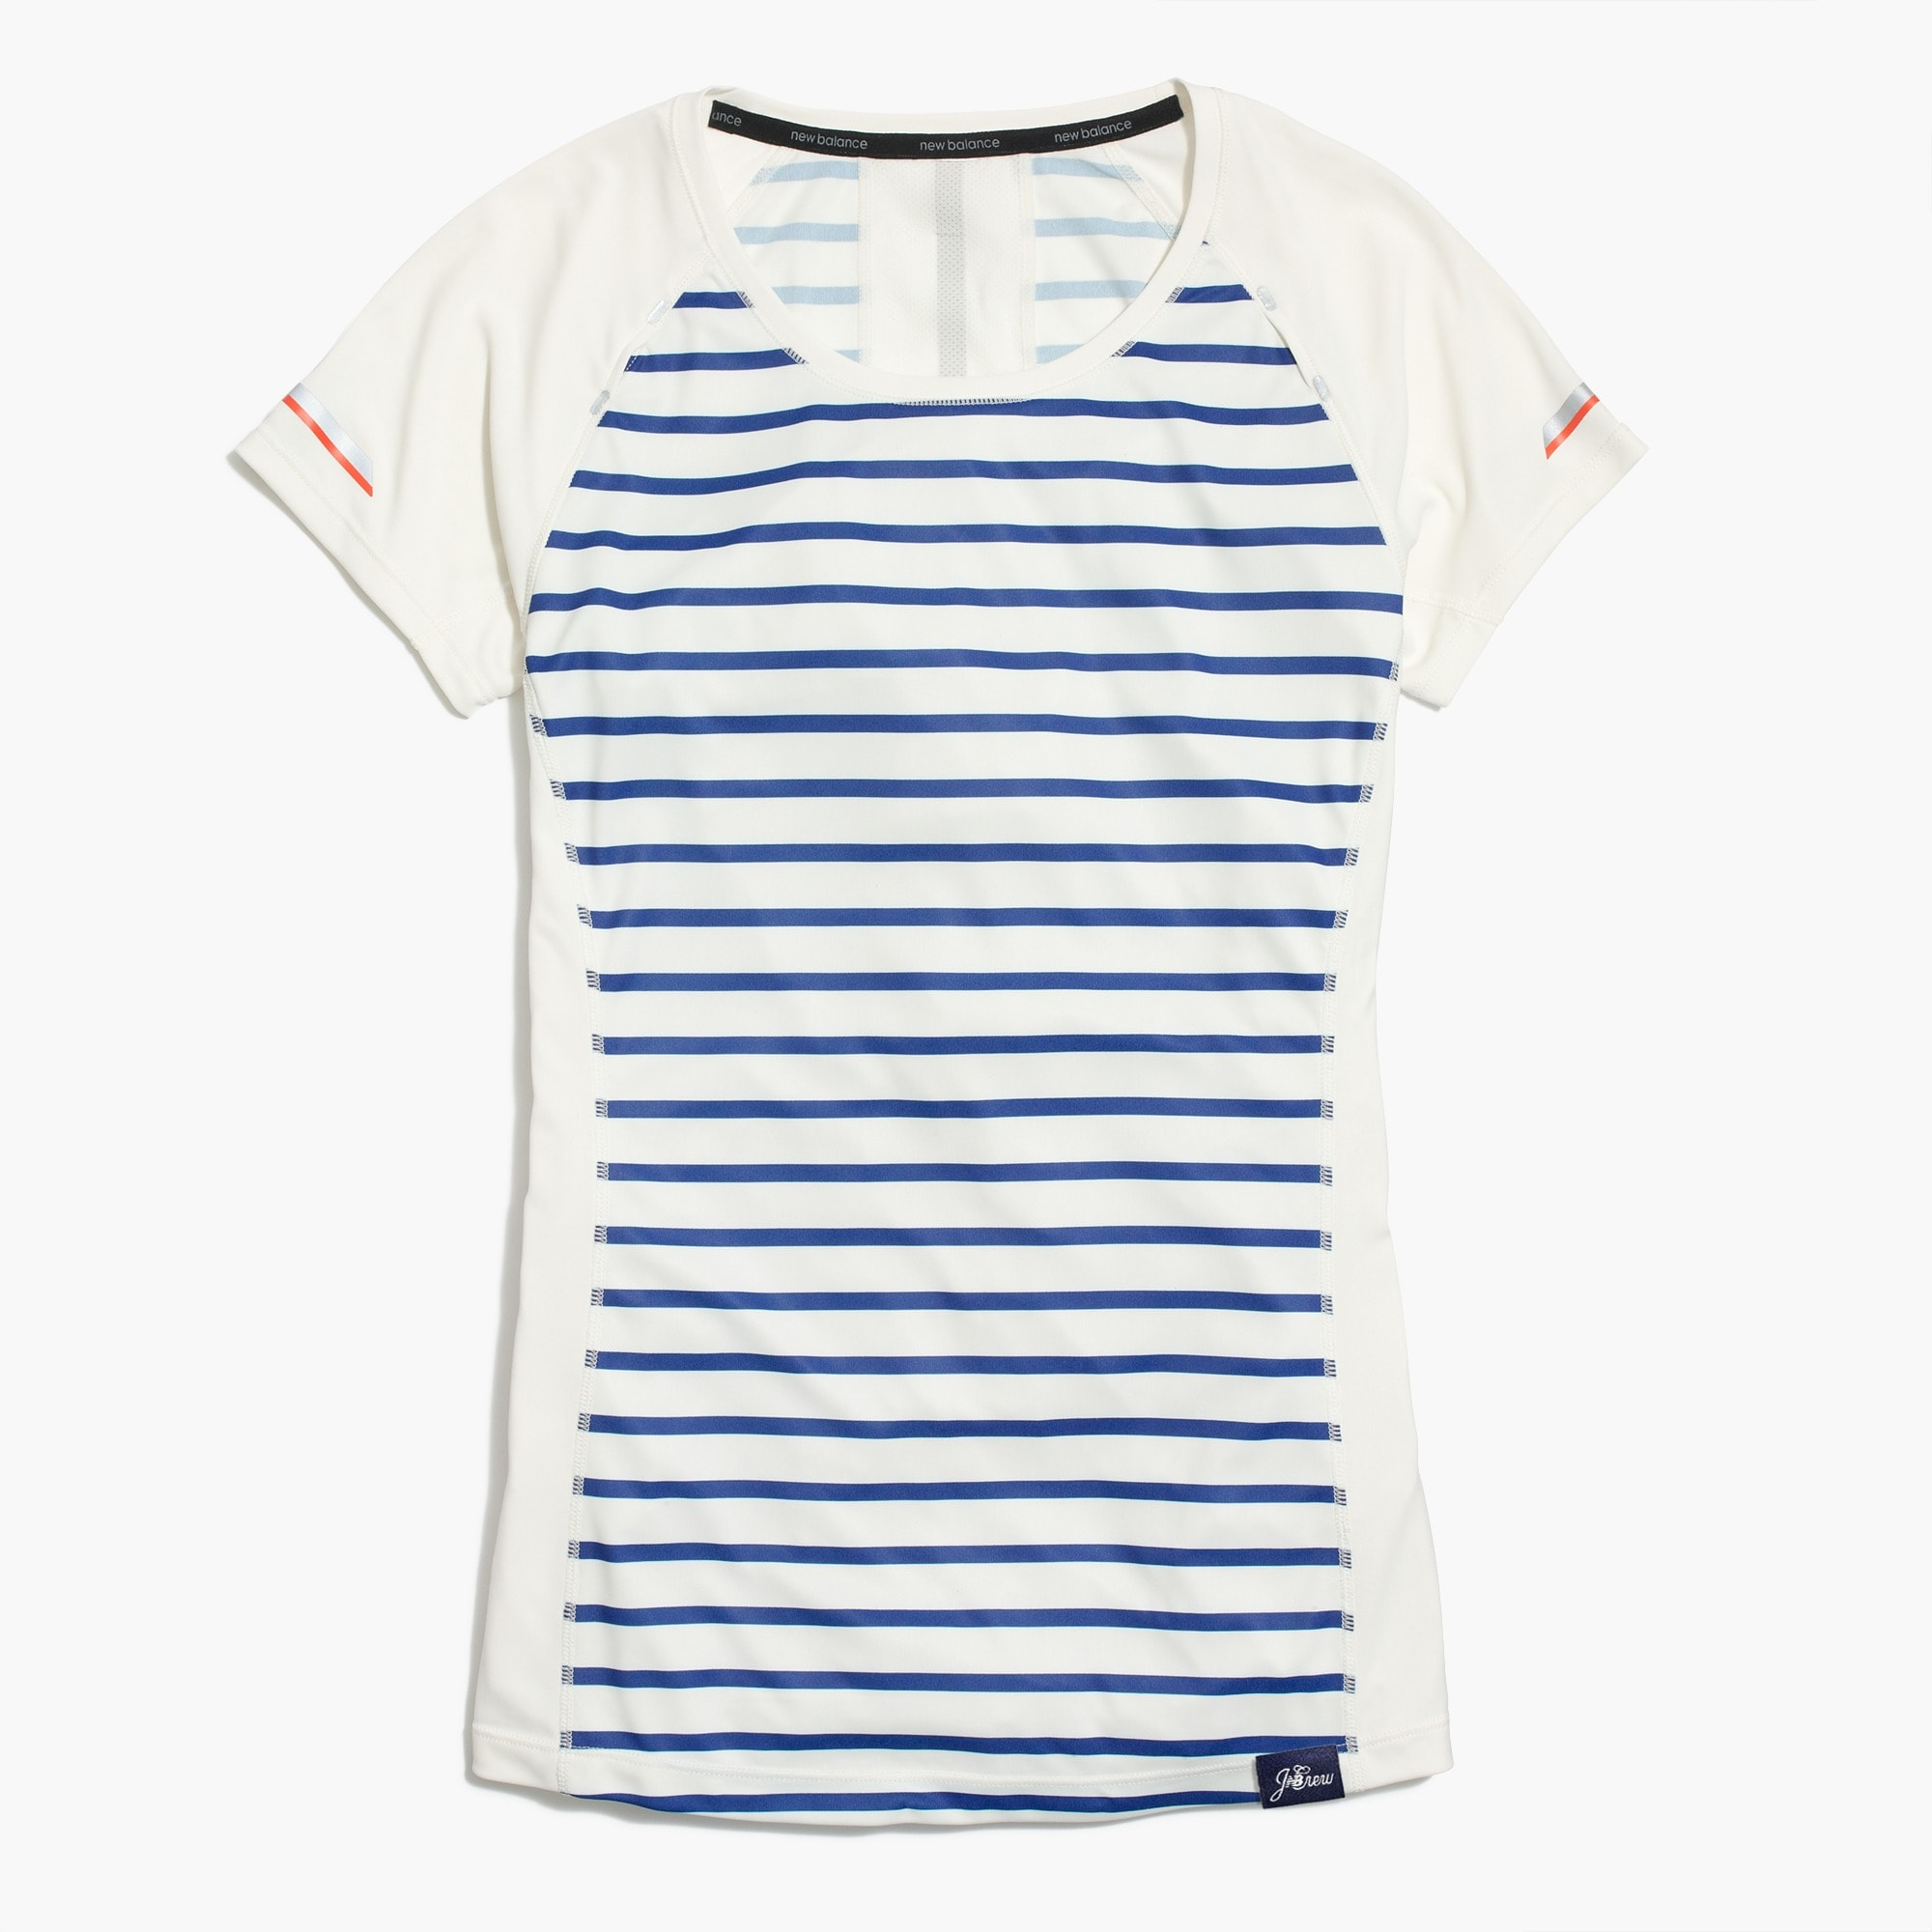 New Balance® for J.Crew striped cooling T-shirt